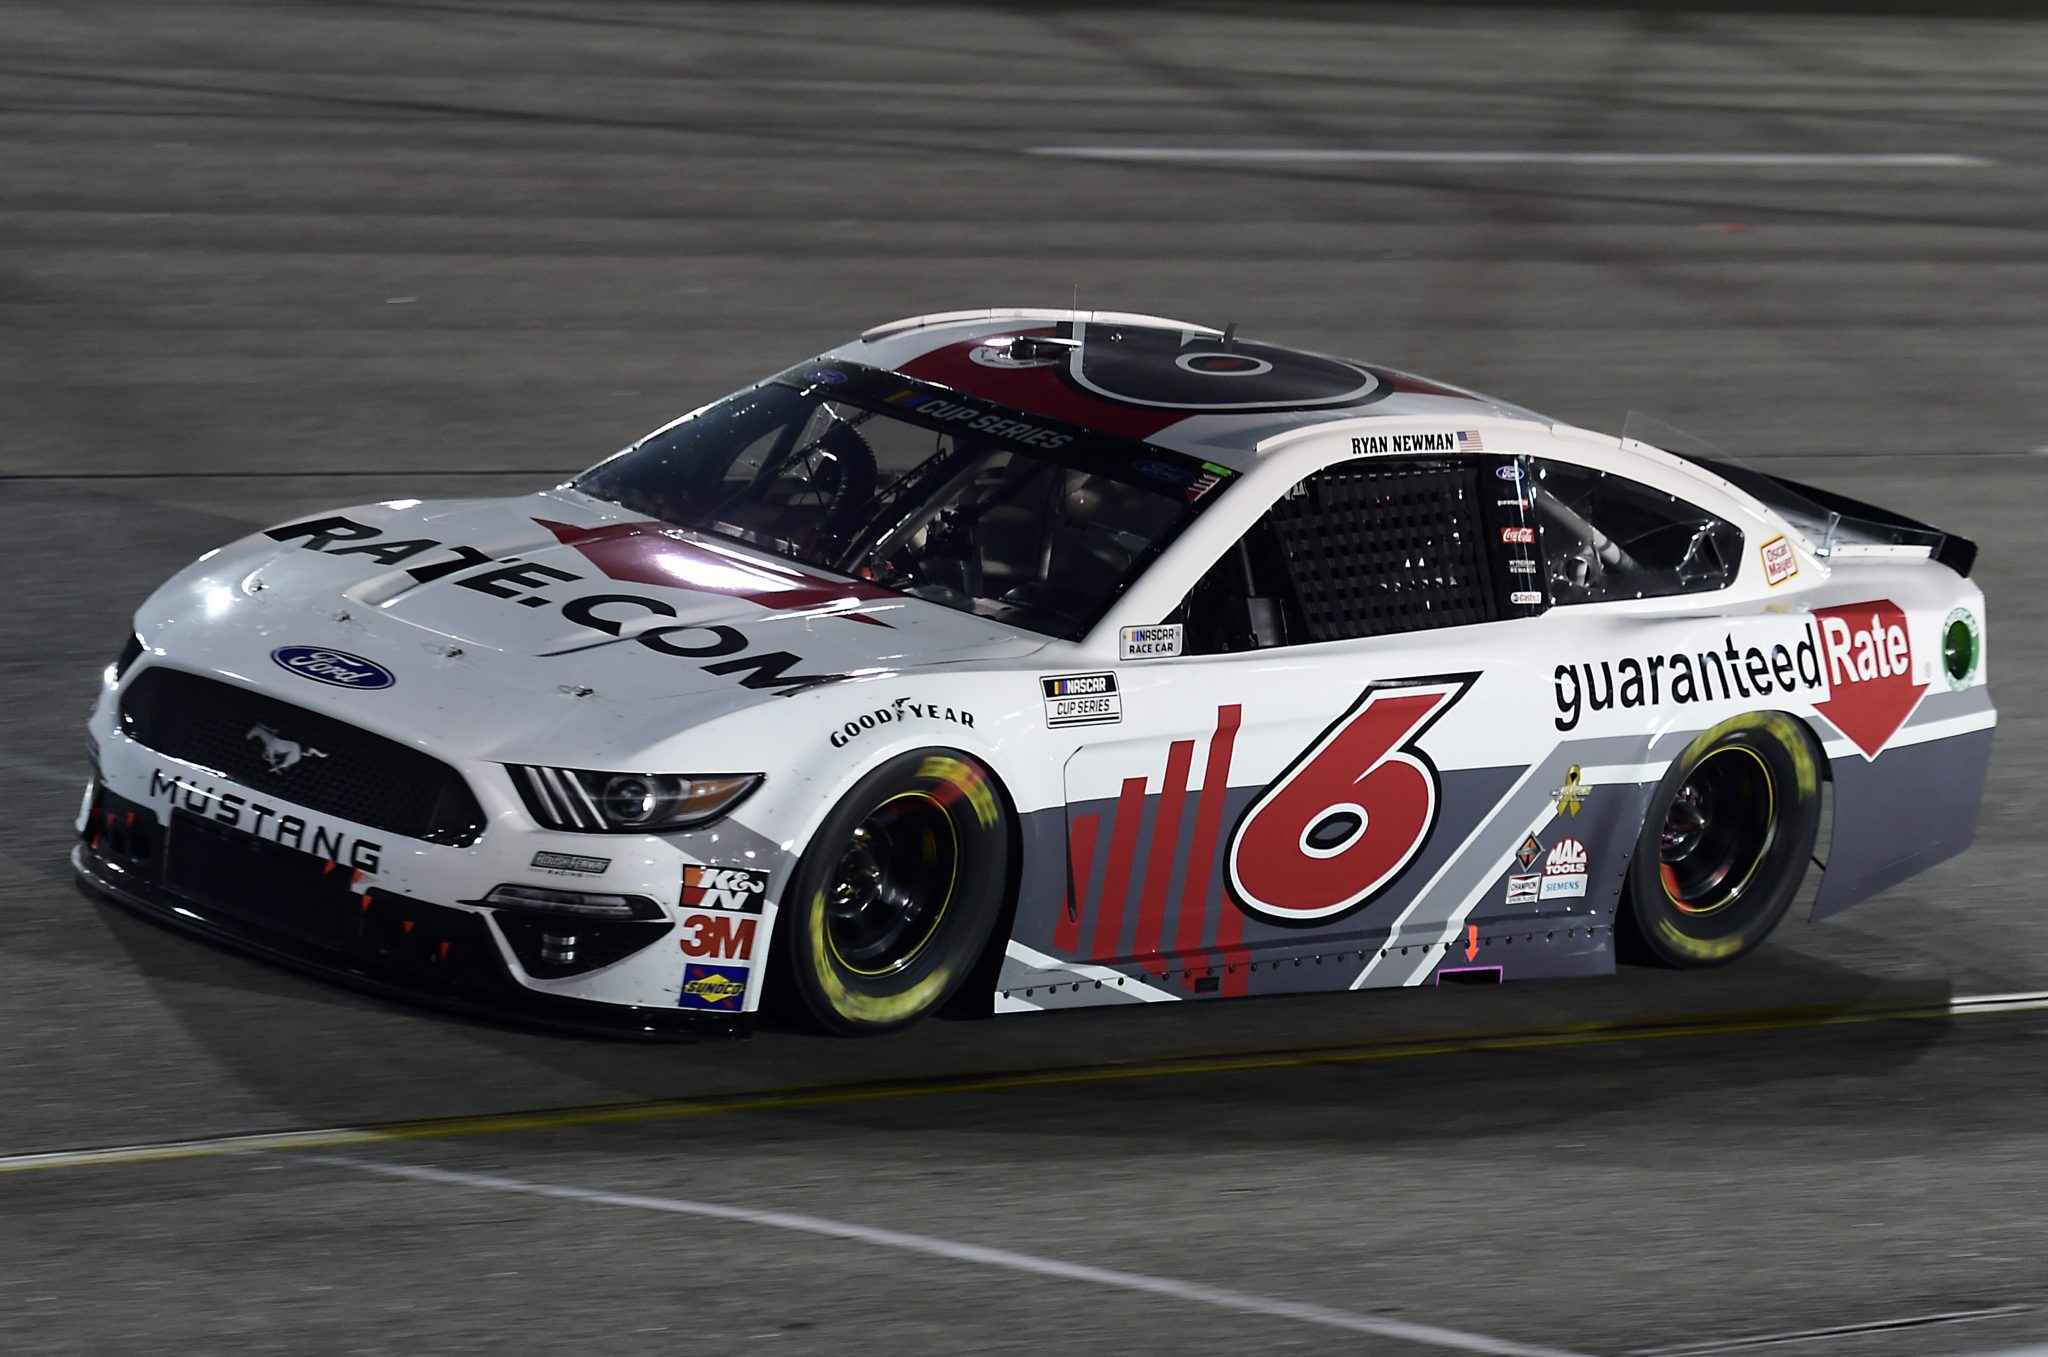 RICHMOND, VIRGINIA - SEPTEMBER 12: Ryan Newman, driver of the #6 Guaranteed Rate Ford, drives during the NASCAR Cup Series Federated Auto Parts 400 at Richmond Raceway on September 12, 2020 in Richmond, Virginia. (Photo by Jared C. Tilton/Getty Images) | Getty Images